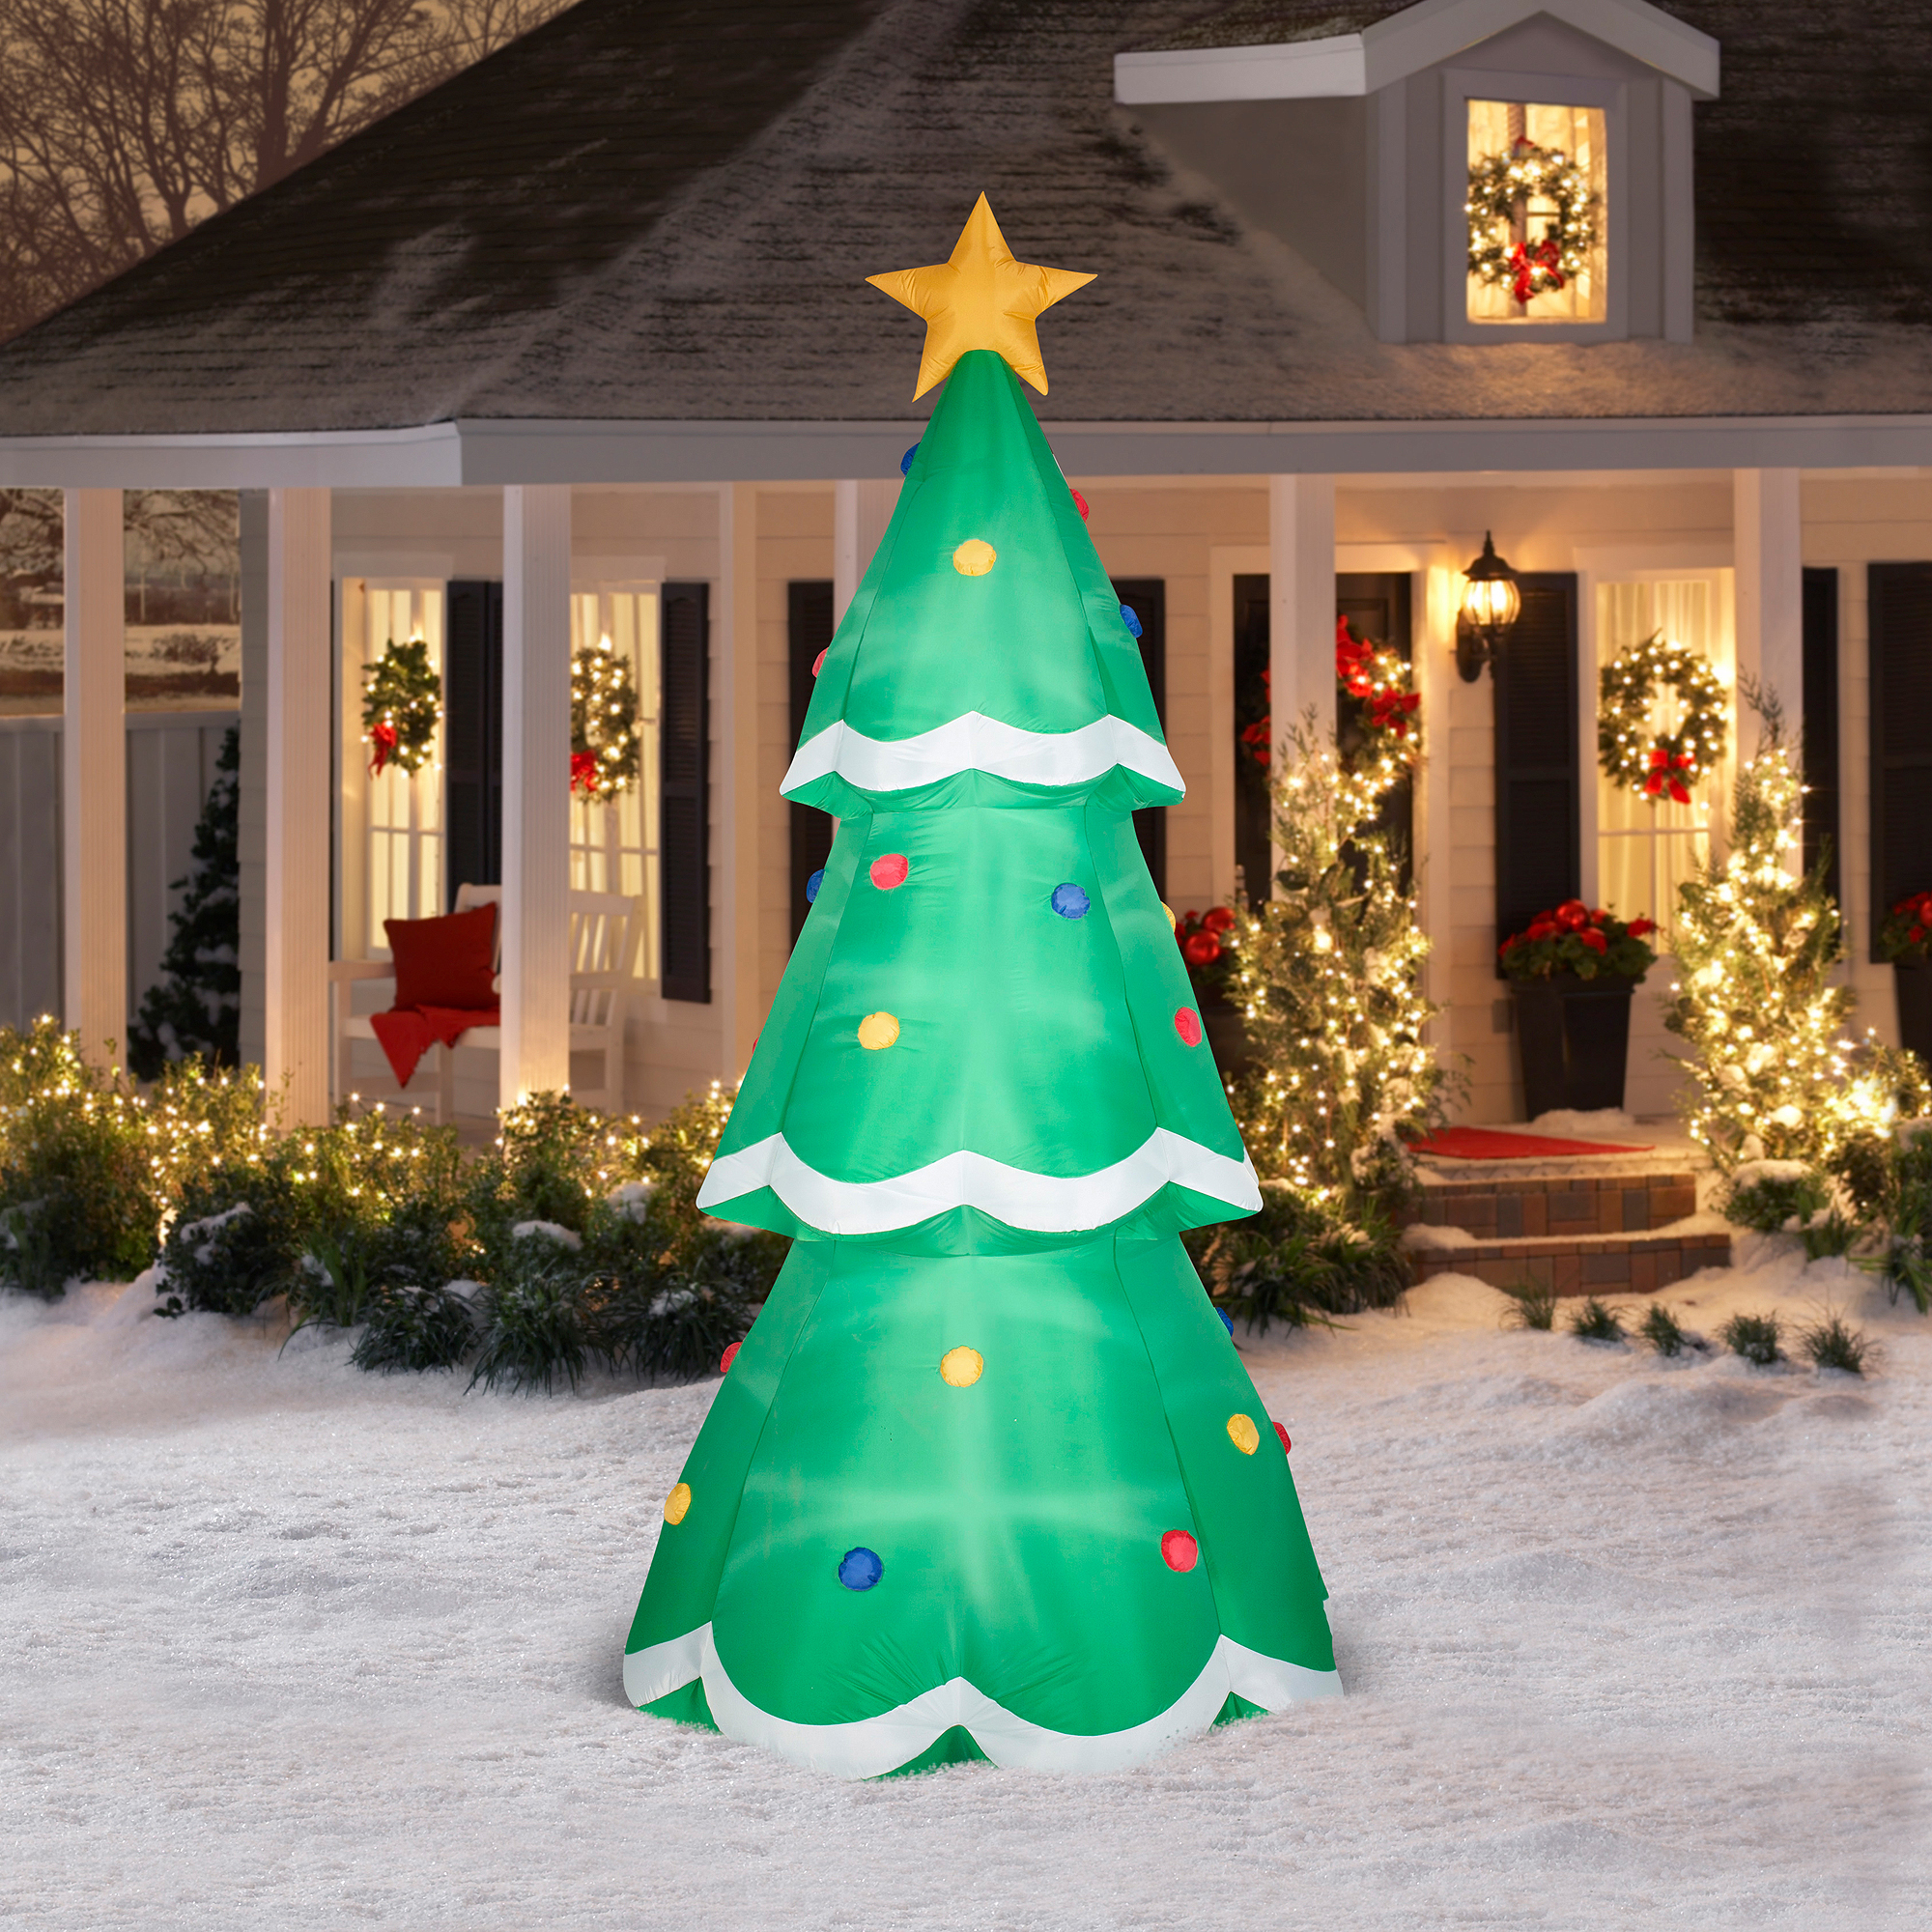 10' Giant Christmas Tree Airblown Inflatable Christmas Prop